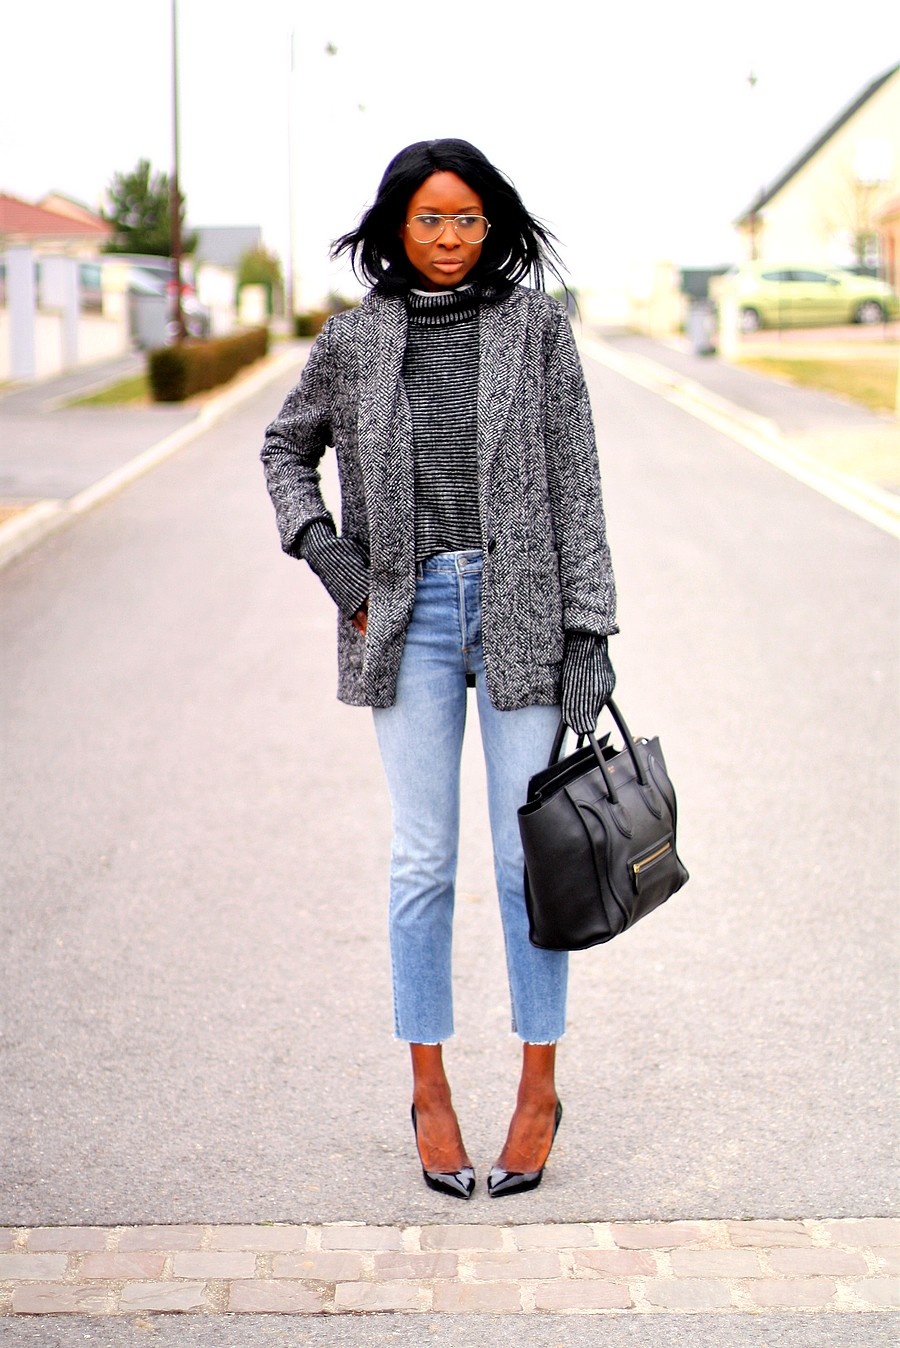 comment-porter-un-mom-jeans-blog-mode